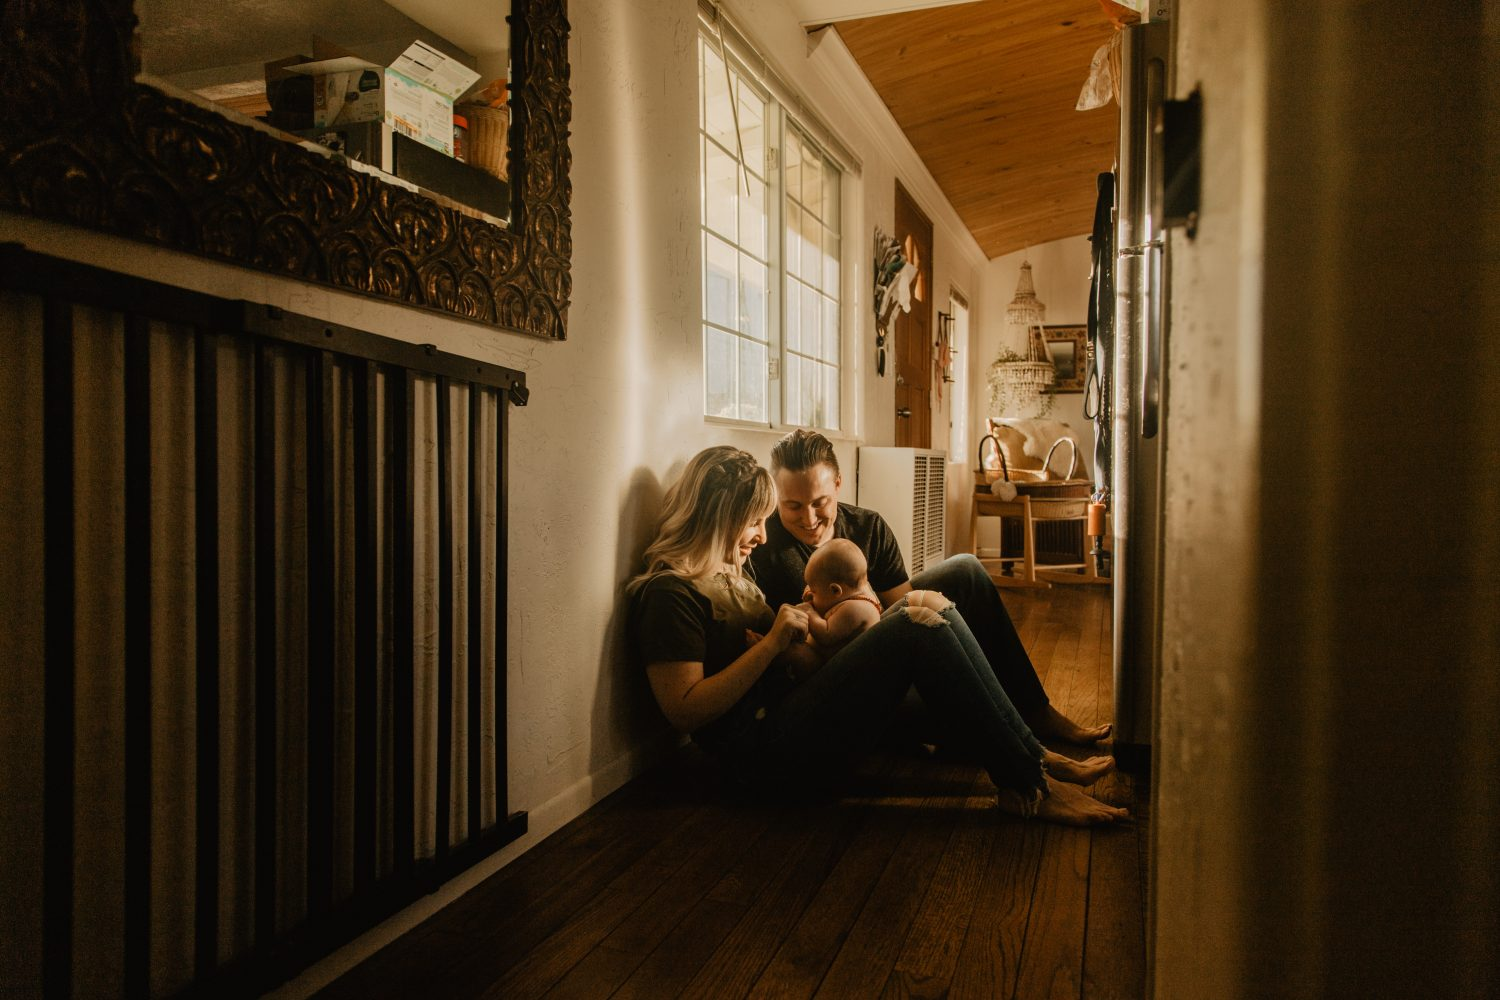 Family session in vintage inspired home, photo by Fatima Elreda Photo